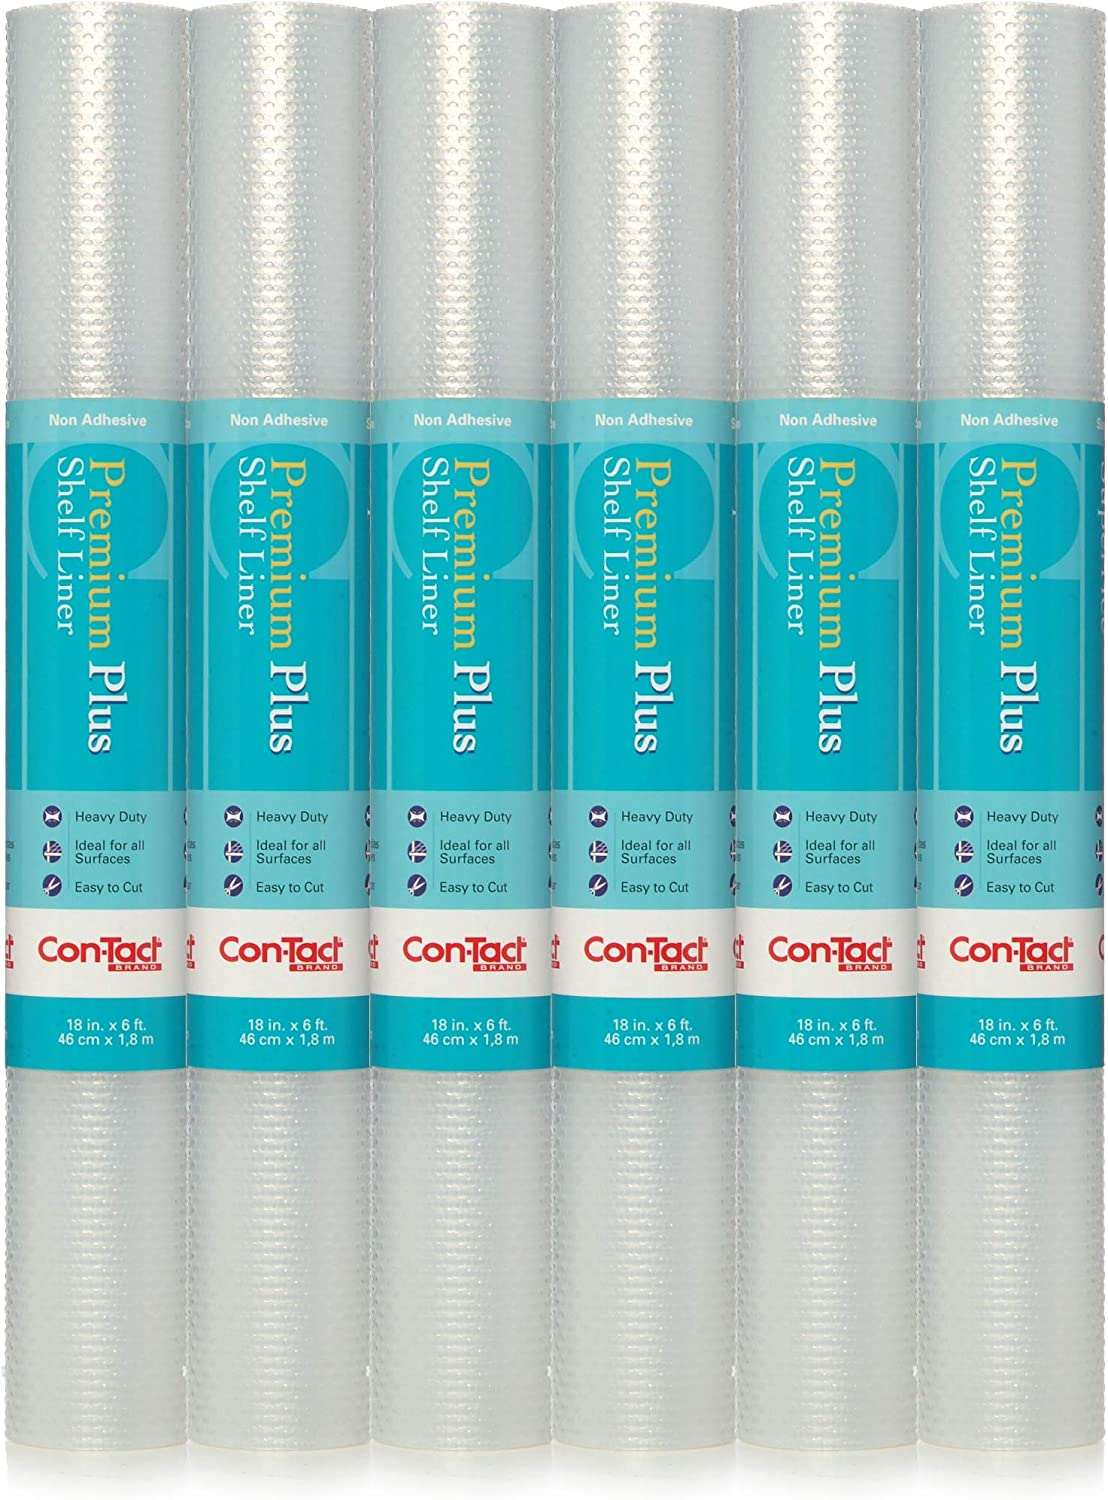 """Con-Tact Brand Premium Plus Non-Adhesive Contact Shelf and Drawer Liner, 18"""" x 6', Nova Crystal Clear, 6 Rolls"""